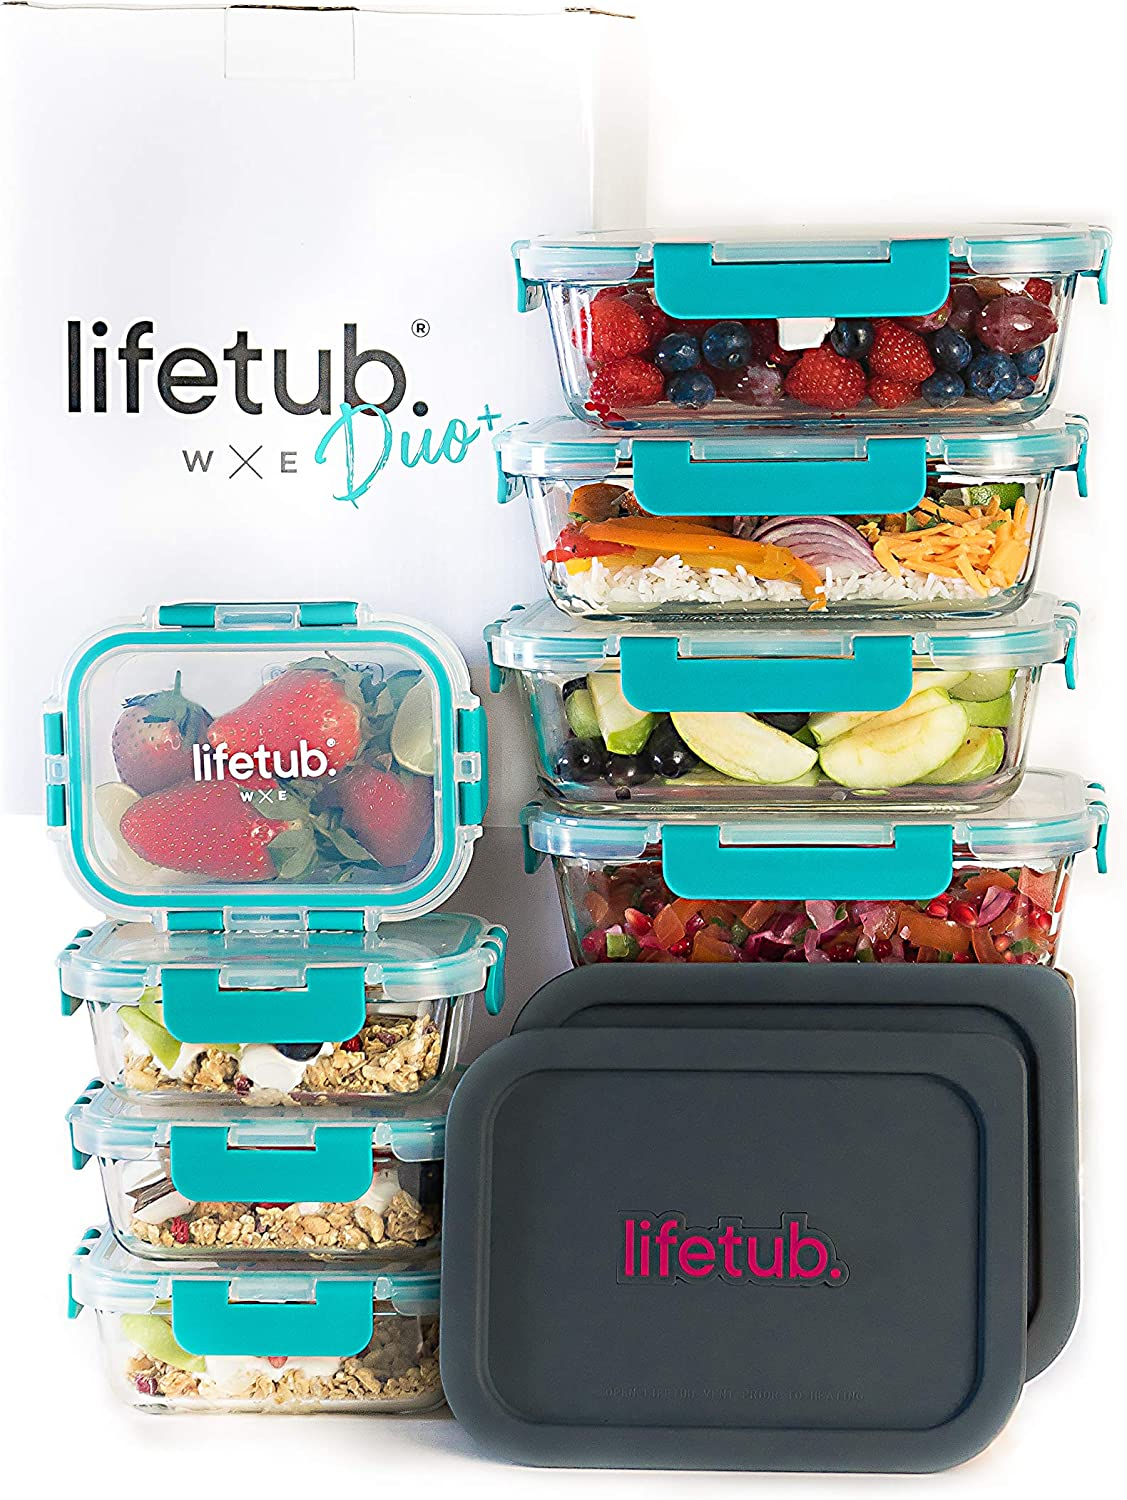 lifetub Duo+ - Large Glass Meal Prep Containers 10 Pack, 2 Sizes (4x35oz, 4x12.5oz) 2x Reheat Silicone Lids - Glass Food Storage Containers with Lids Airtight, Food Storage, Food Containers BPA Free